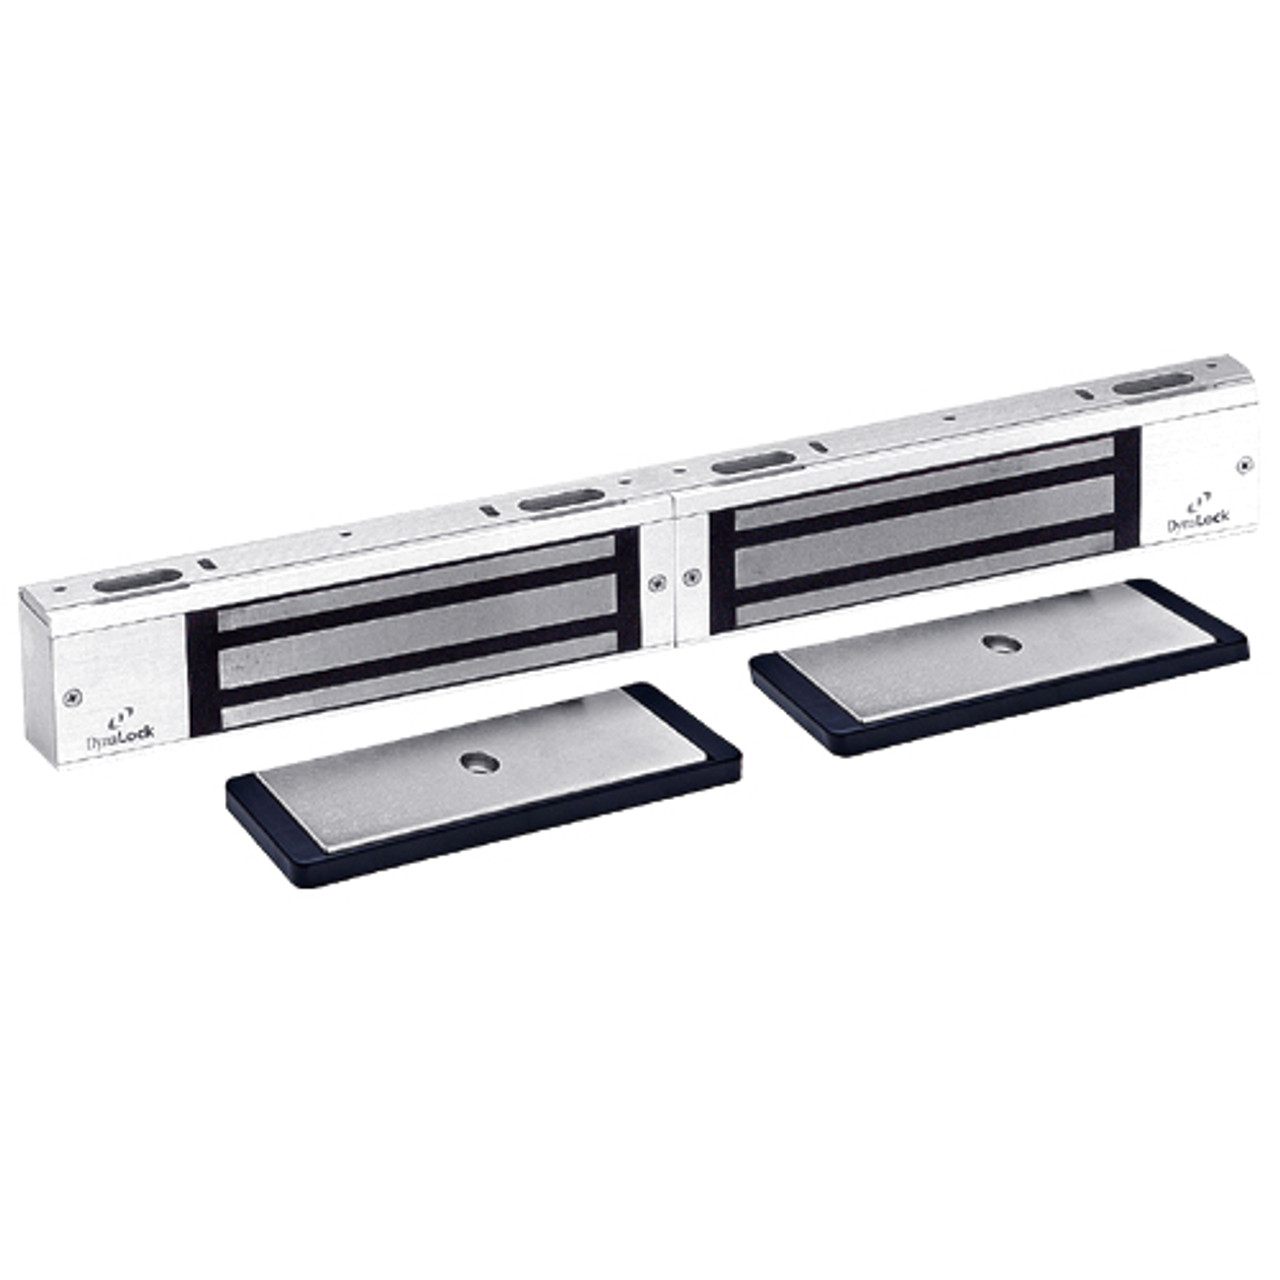 3002TJ32-US26-HSM2 DynaLock 3000 Series 1500 LBs Double Electromagnetic Lock for Inswing Door with HSM in Bright Chrome